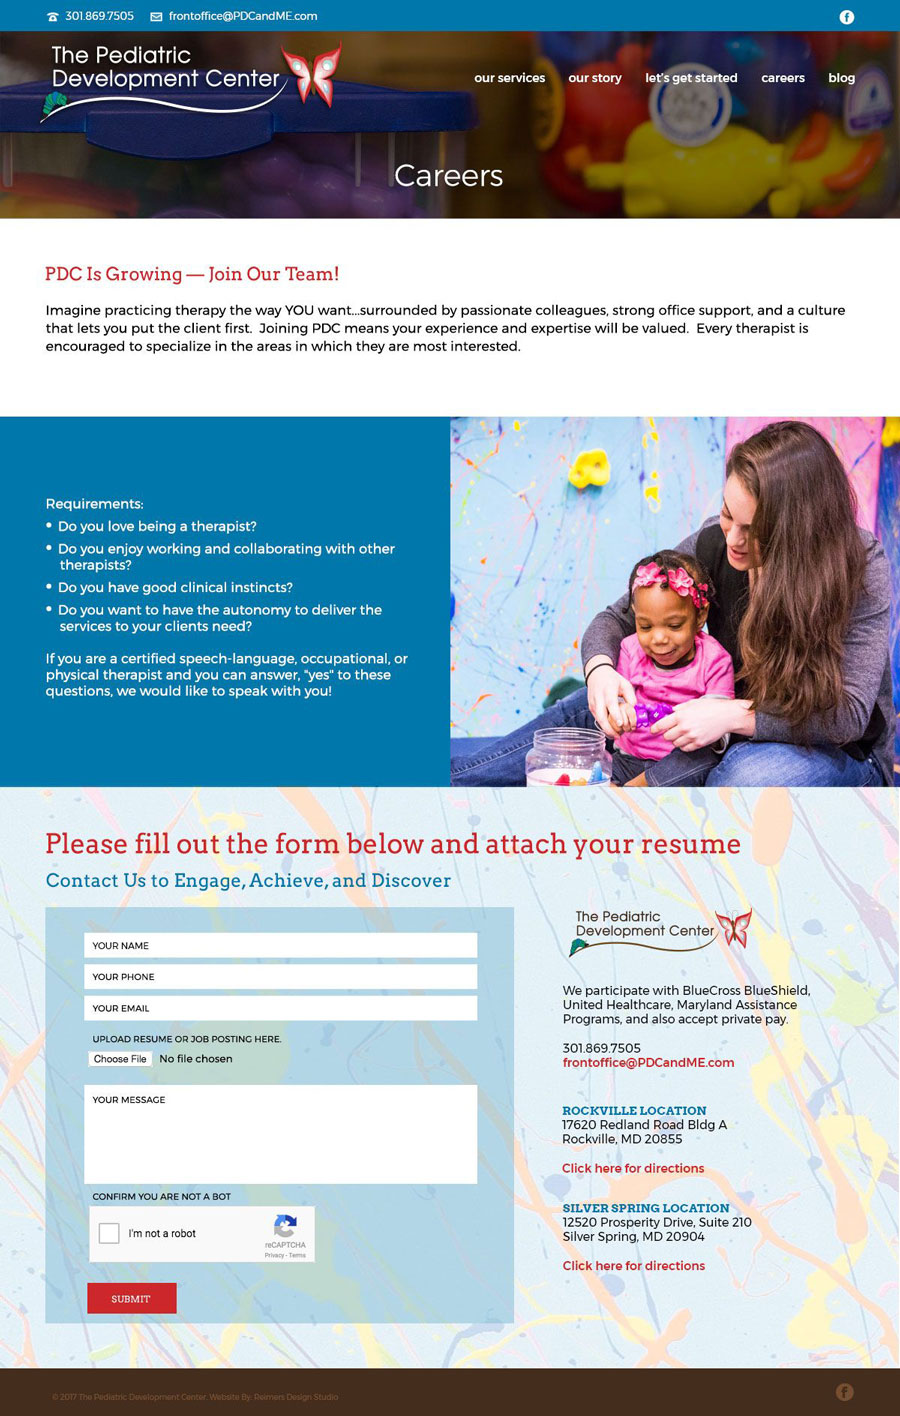 The Pediatric Development Center Website Design